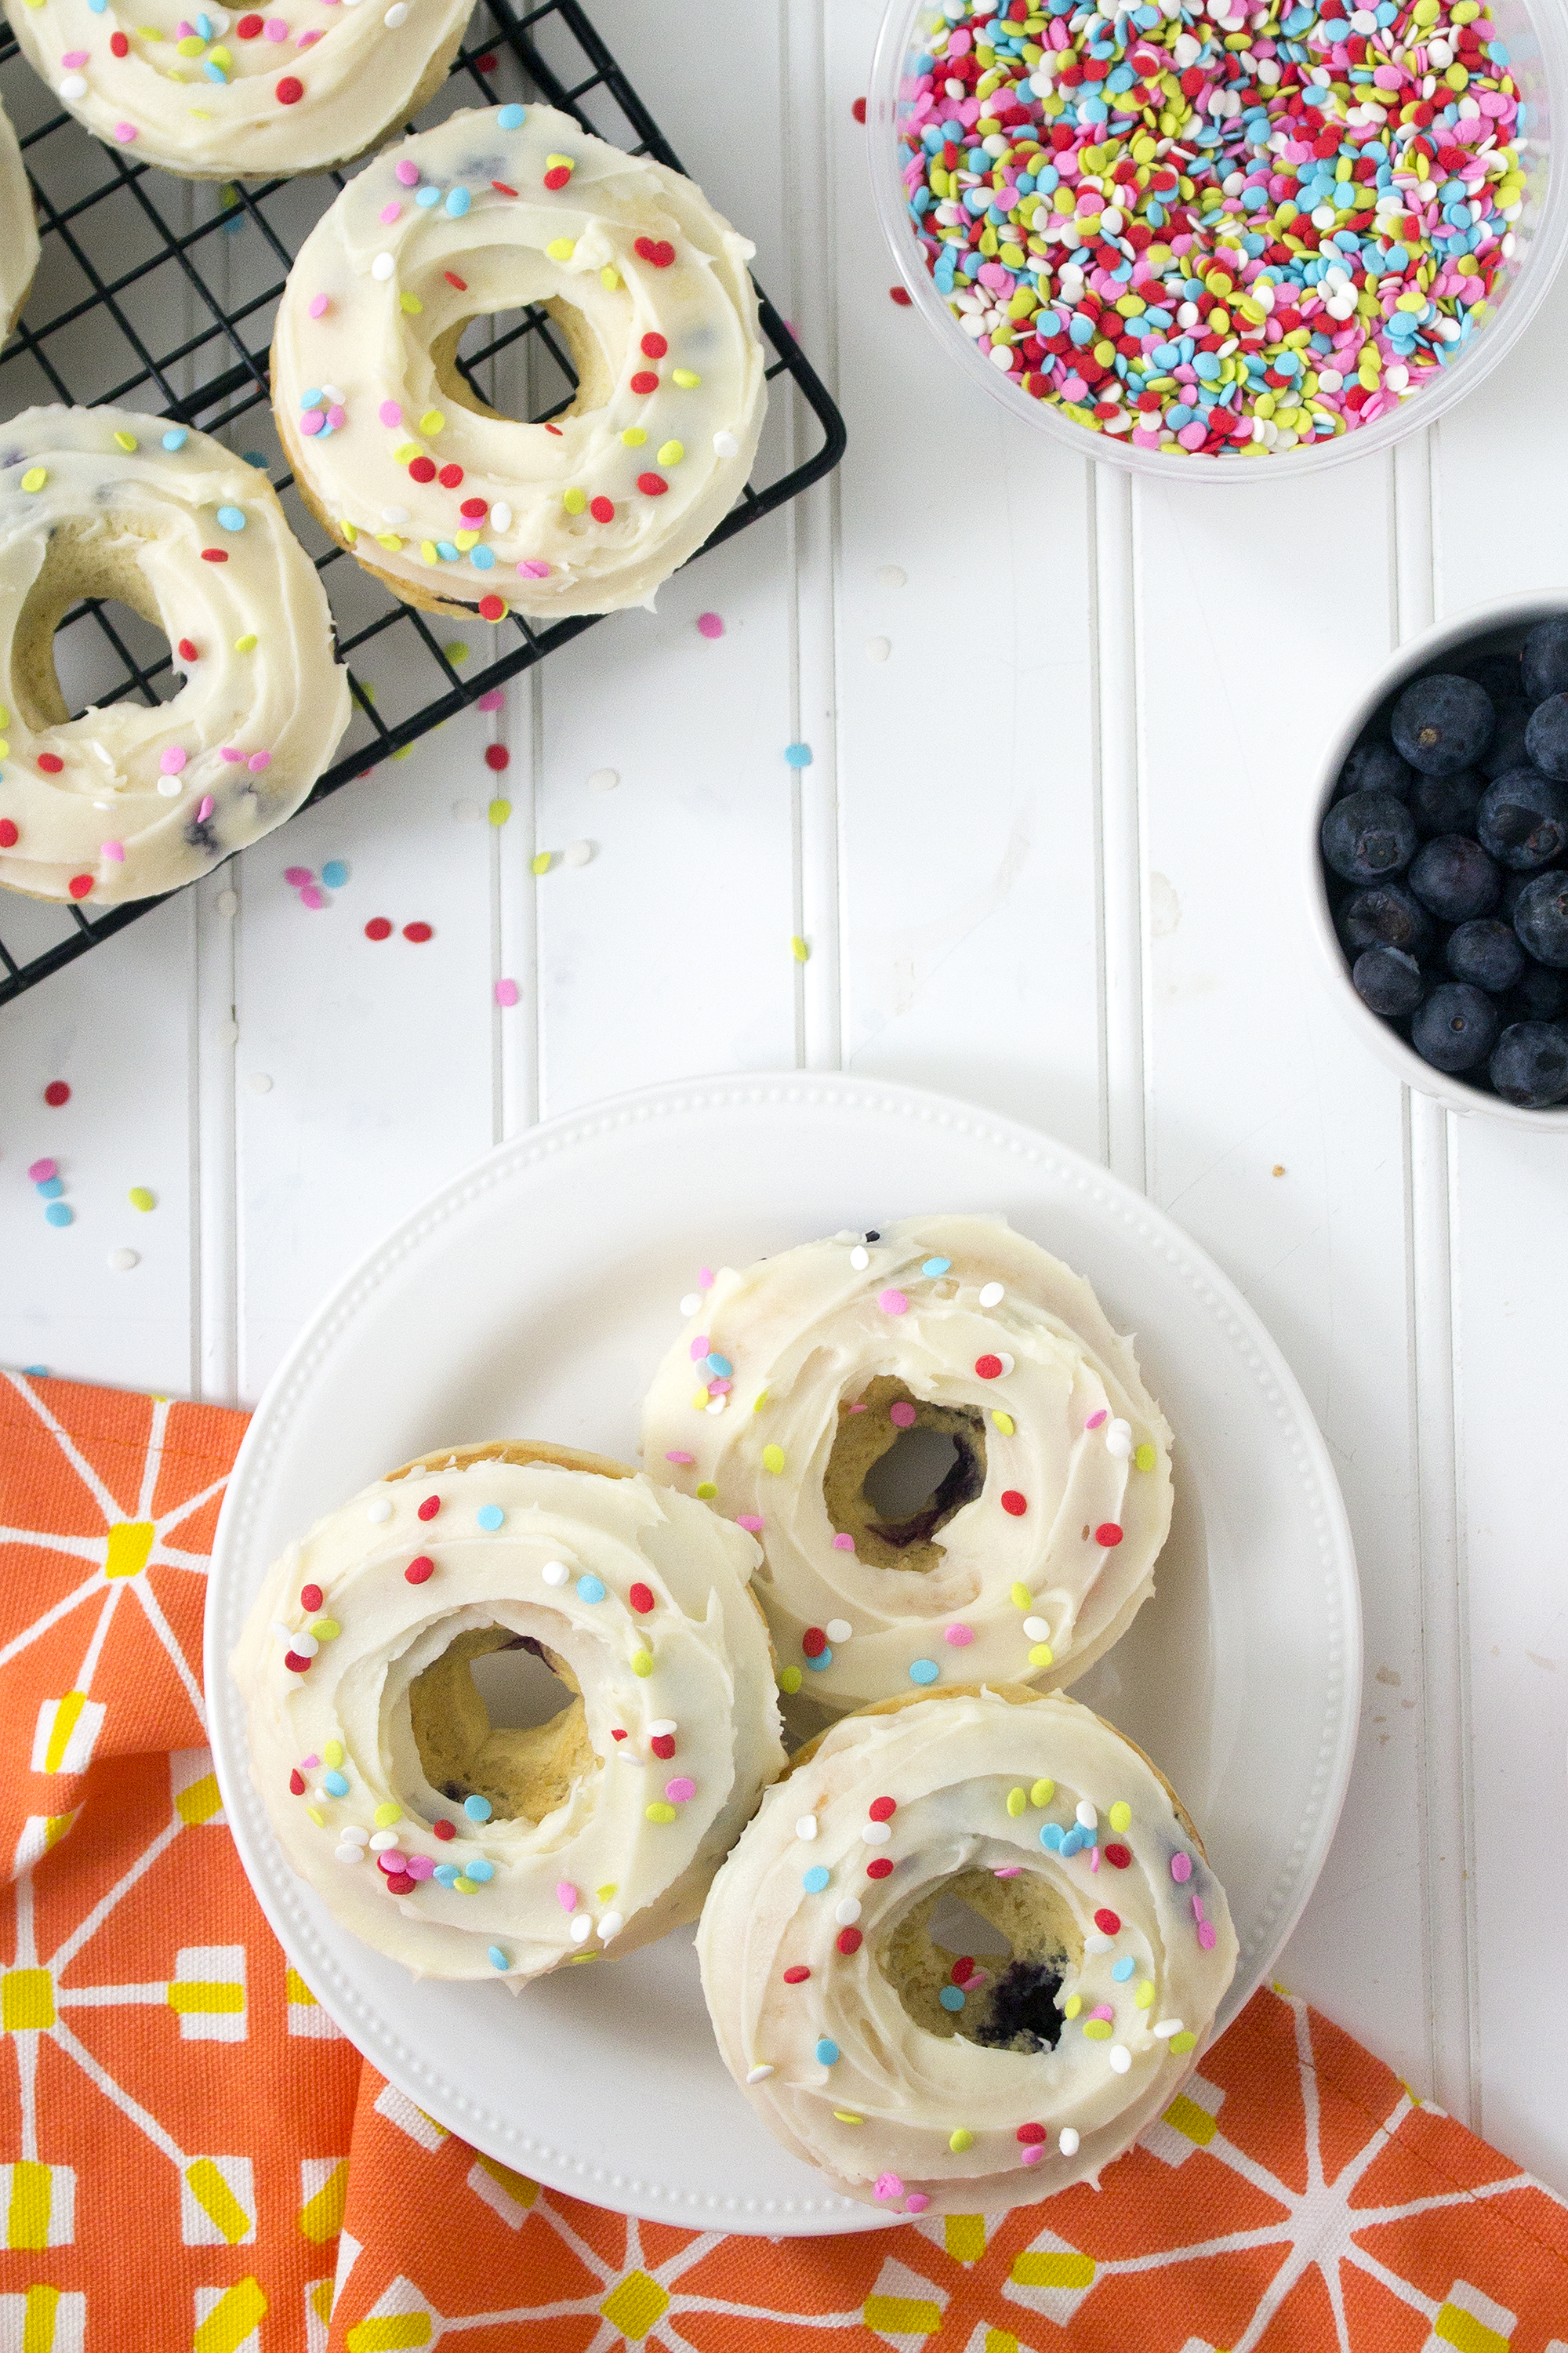 Baked Lemon and Blueberry Donuts are easy and delicious. Get the recipe: unusuallylovely.com